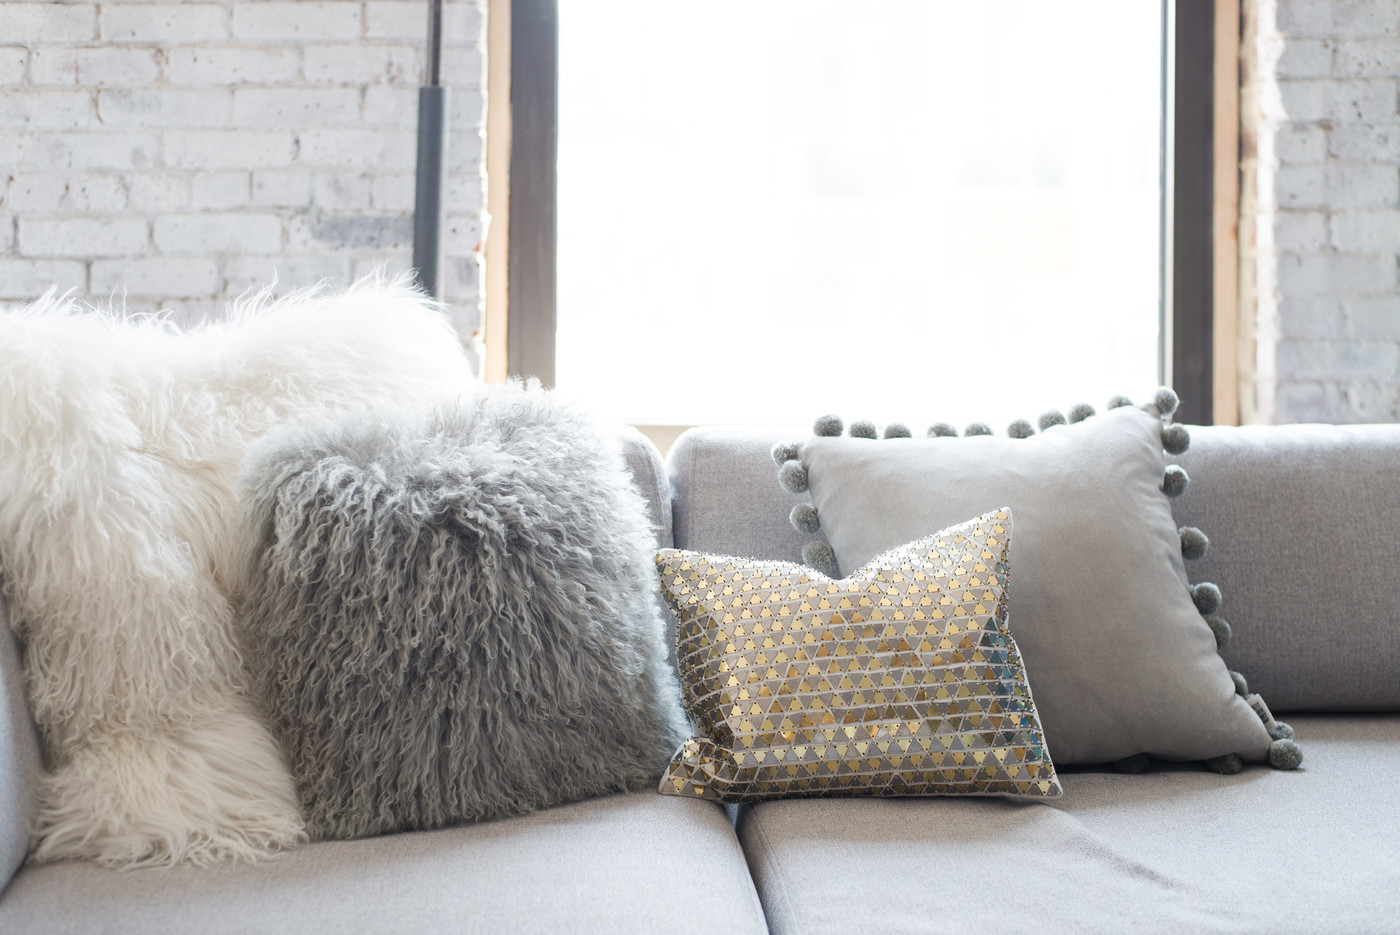 Fur Pillow Photos Design Ideas Remodel And Decor Lonny